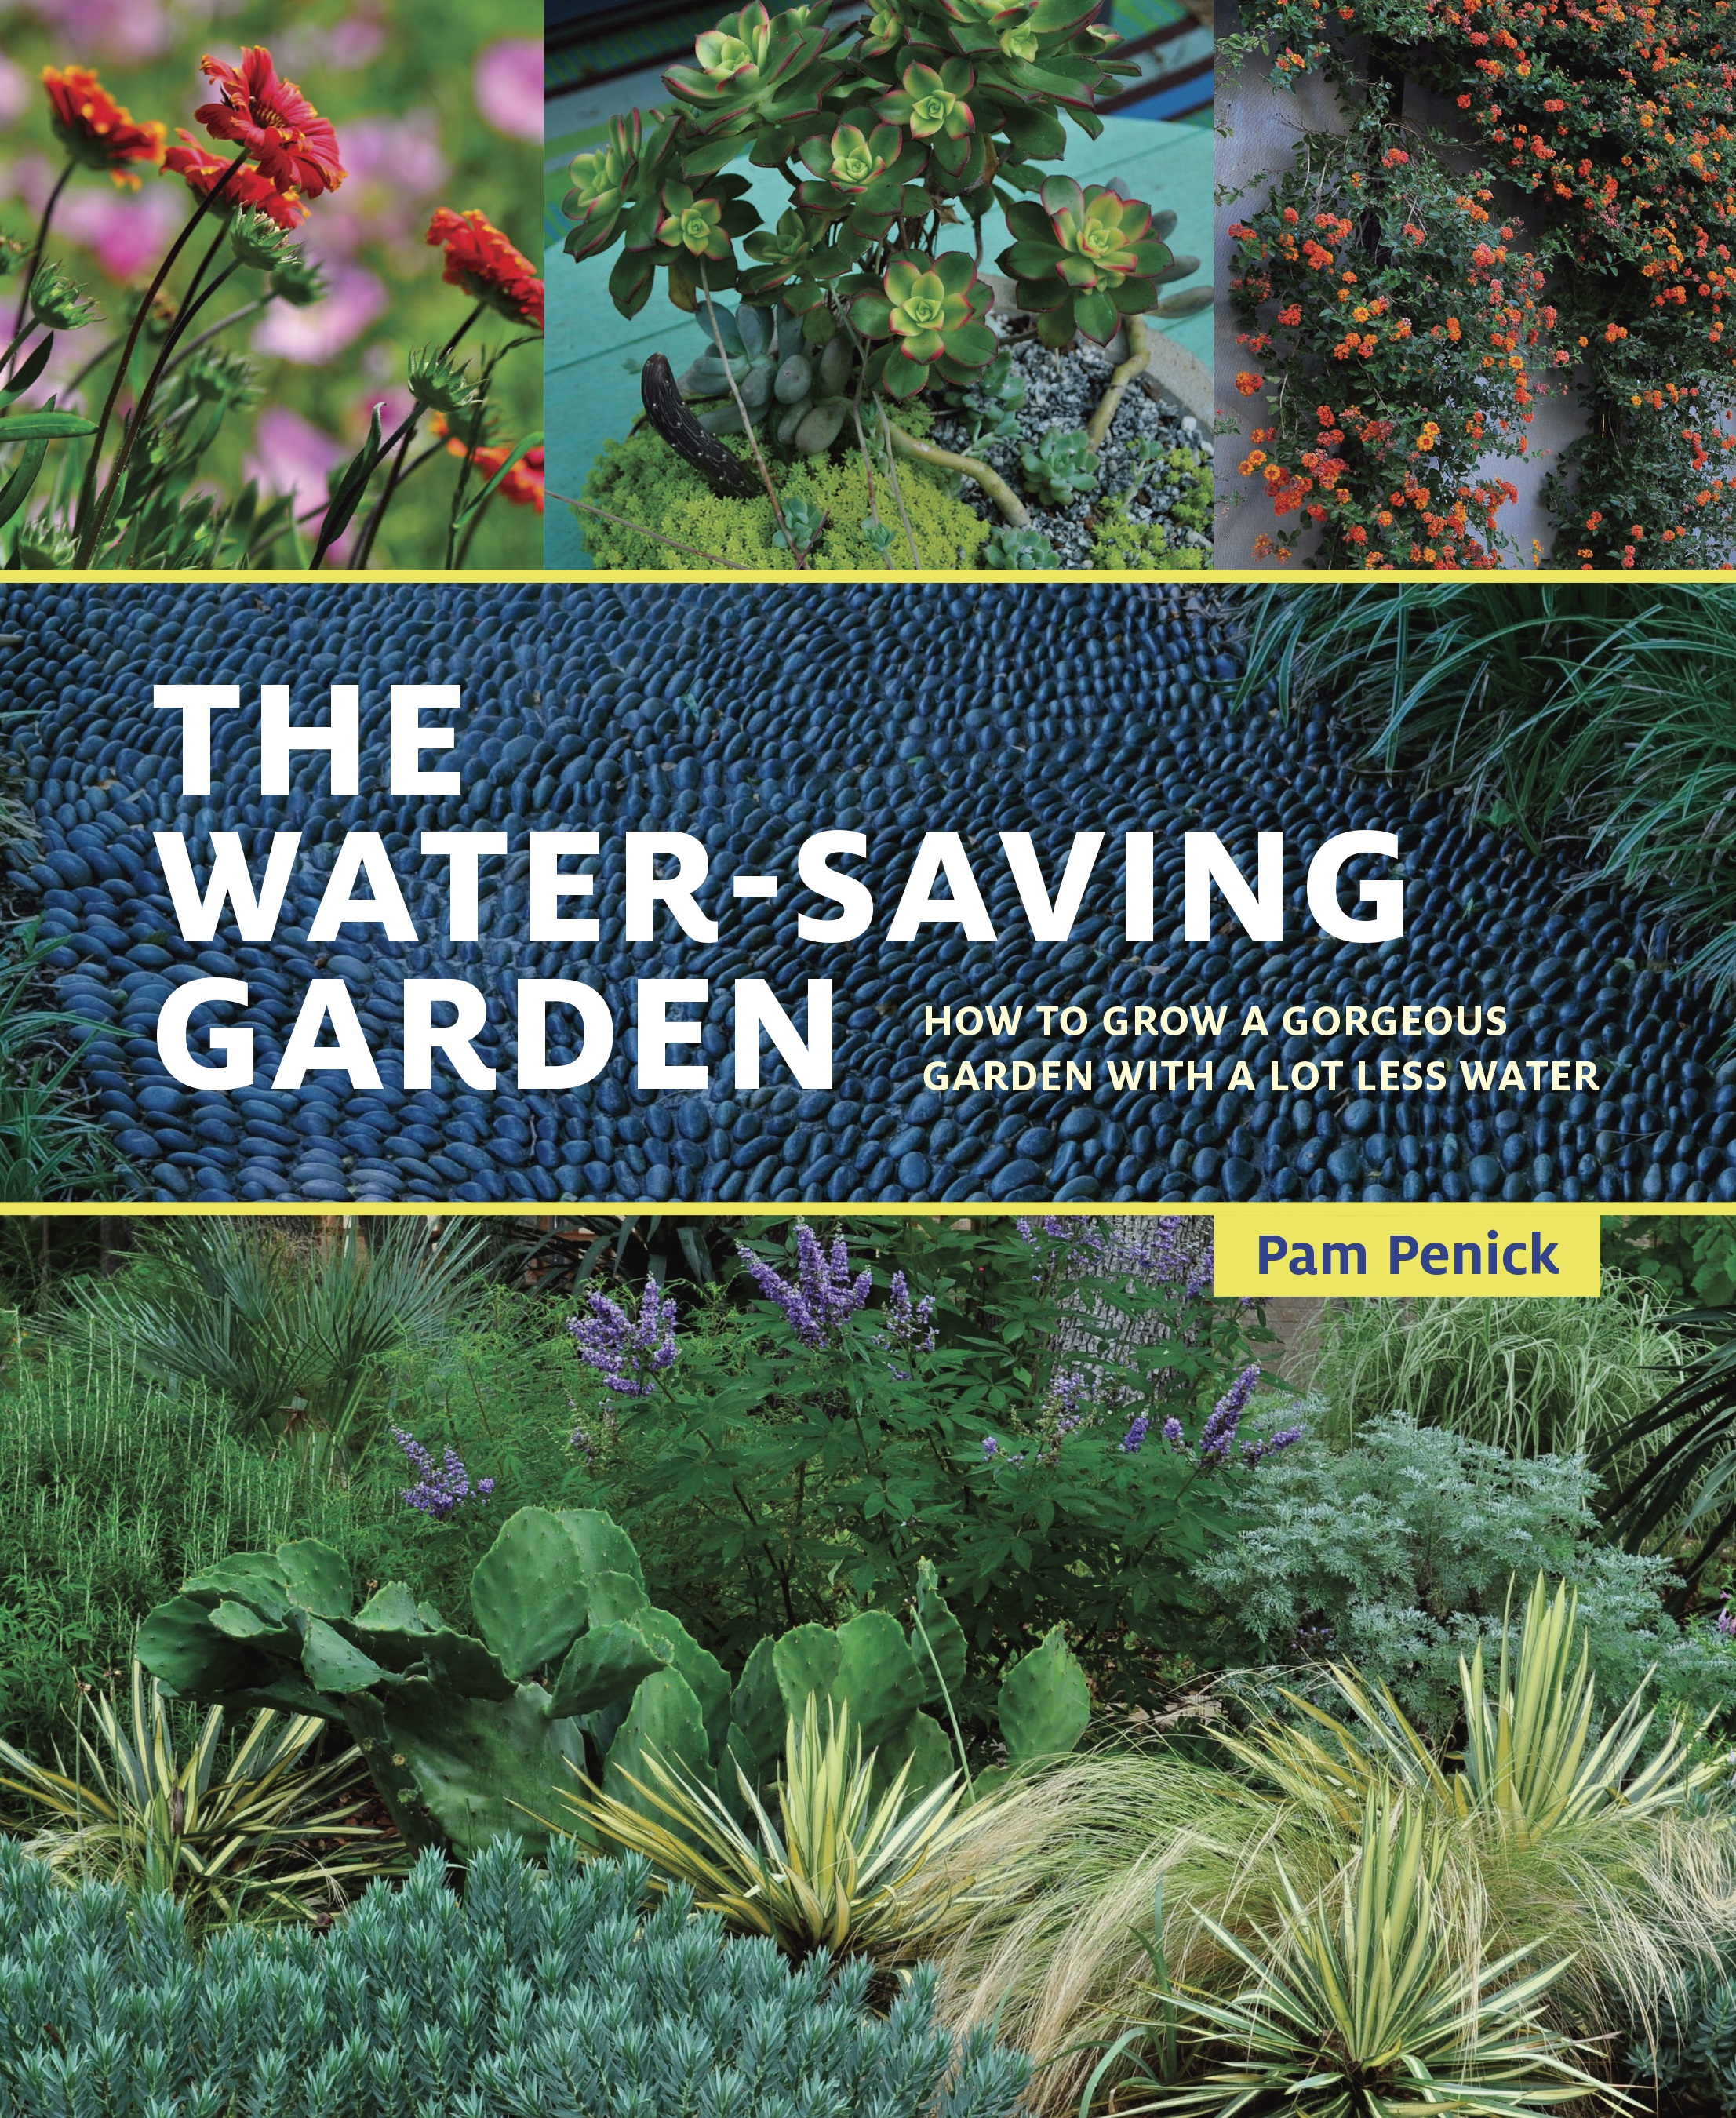 SG555 How to Grow a Gorgeous Garden Using Less Water with Pam